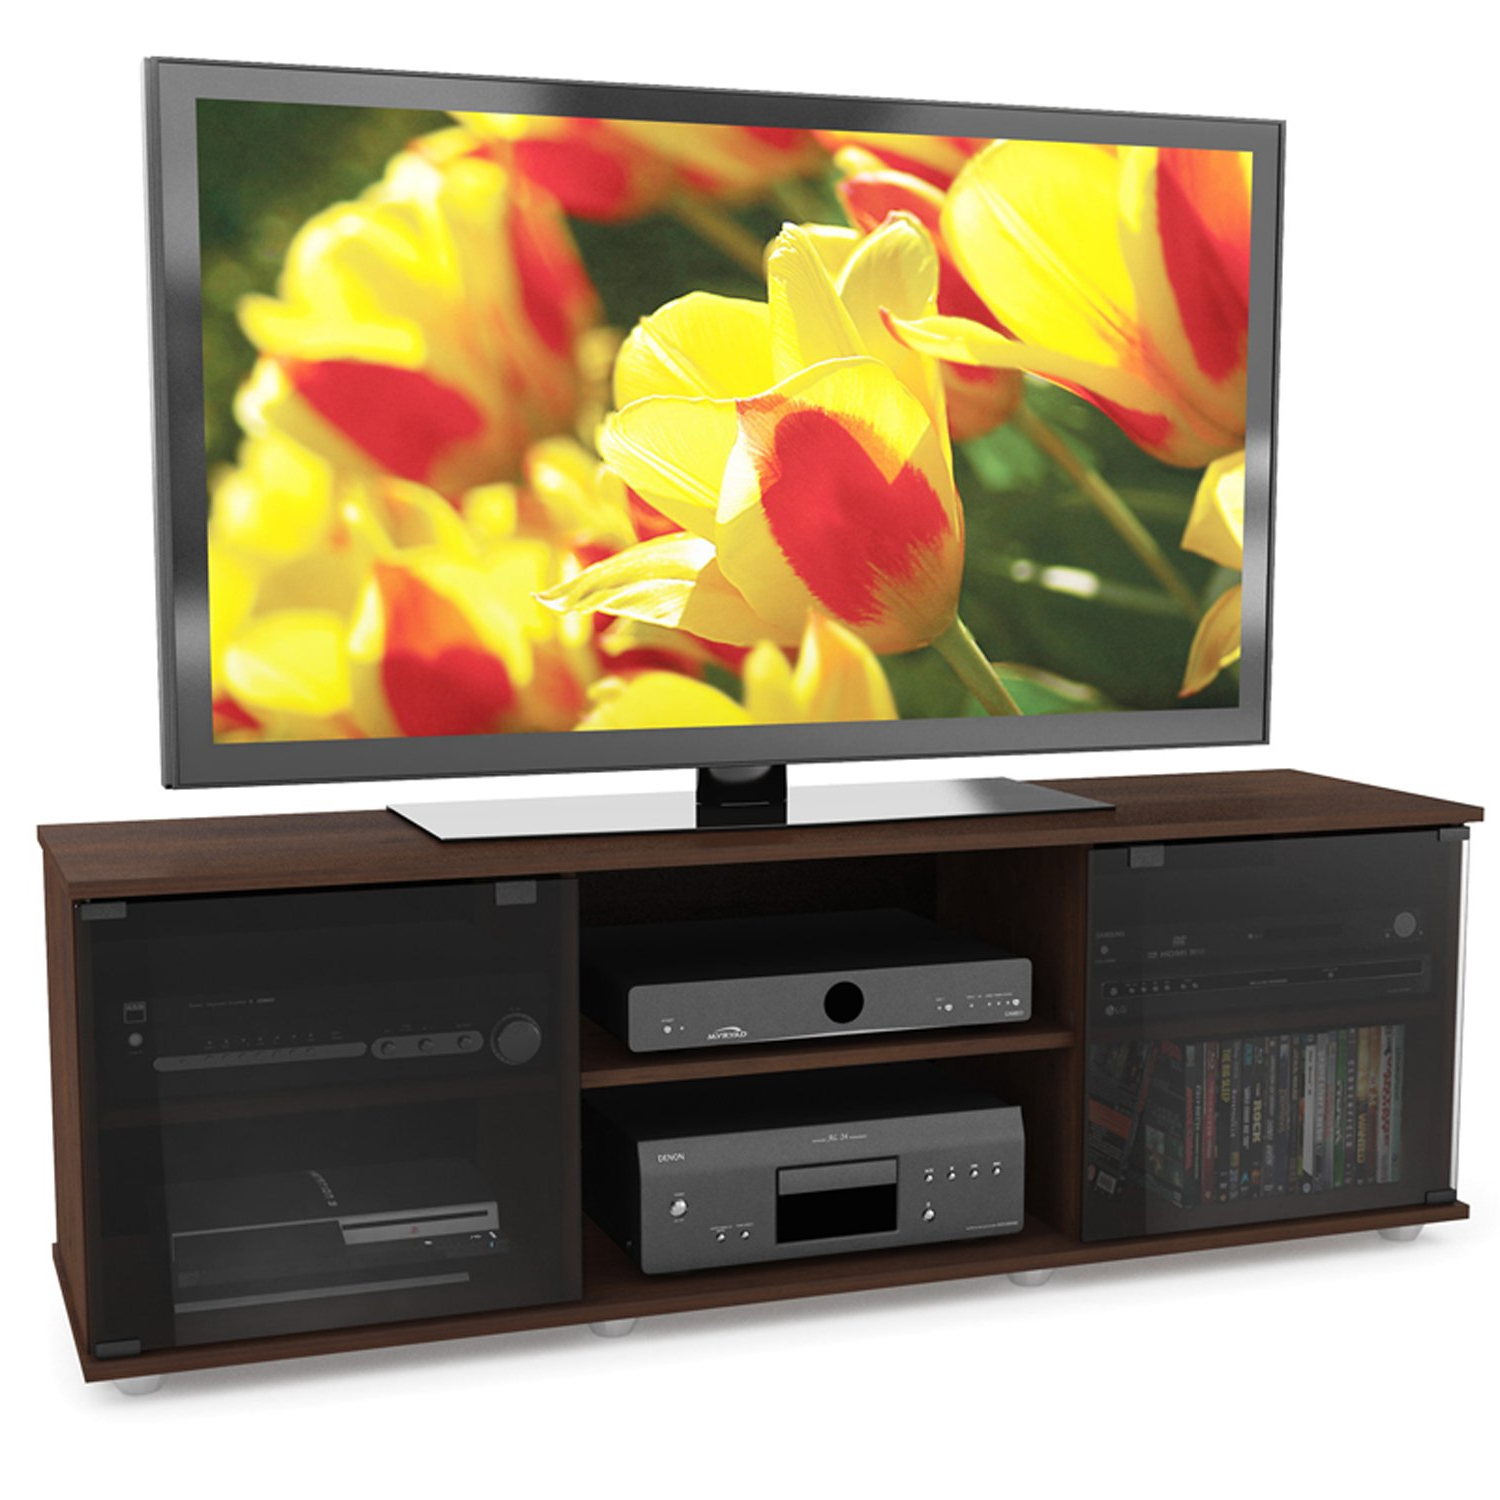 Most Recently Released Sonax Fb 2607 Fiji Tv Stand, Brown Throughout Sonax Tv Stands (View 15 of 20)